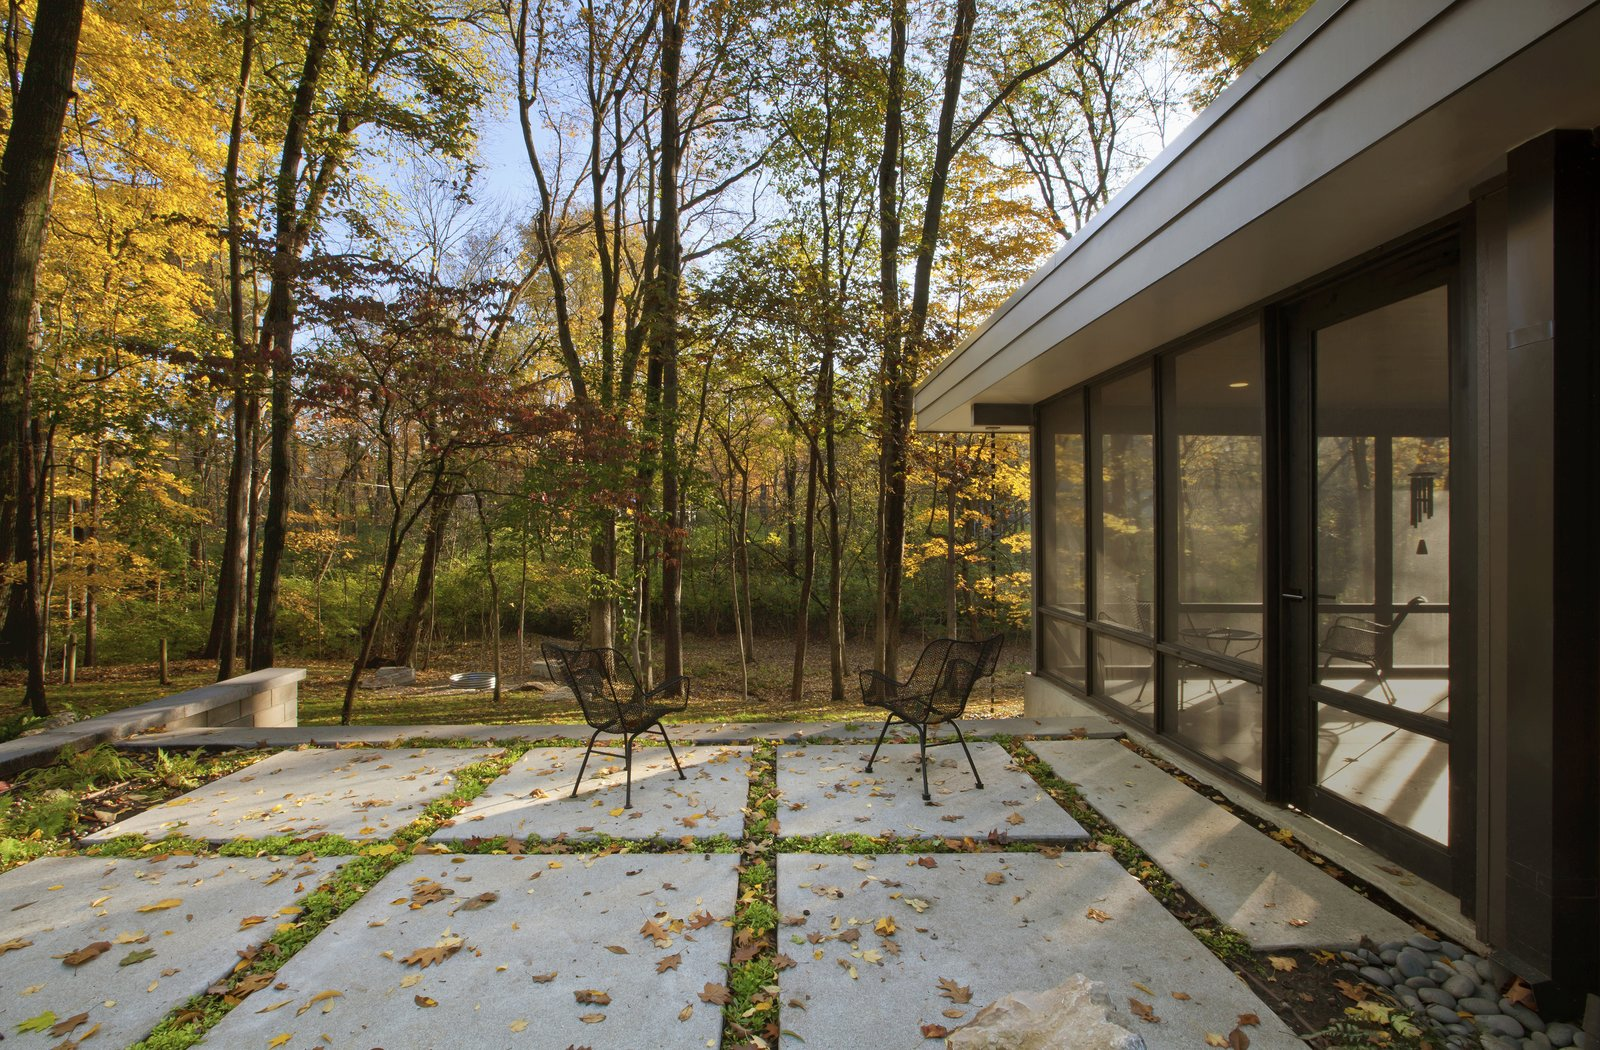 Outdoor, Grass, Landscape Lighting, Walkways, Planters Patio, Porch, Deck, Gardens, Pavers Patio, Porch, Deck, Woodland, Shrubs, Concrete Patio, Porch, Deck, Stone Fences, Wall, Hardscapes, Trees, Back Yard, and Concrete Fences, Wall  MCM 220 by HAUS | Architecture For Modern Lifestyles